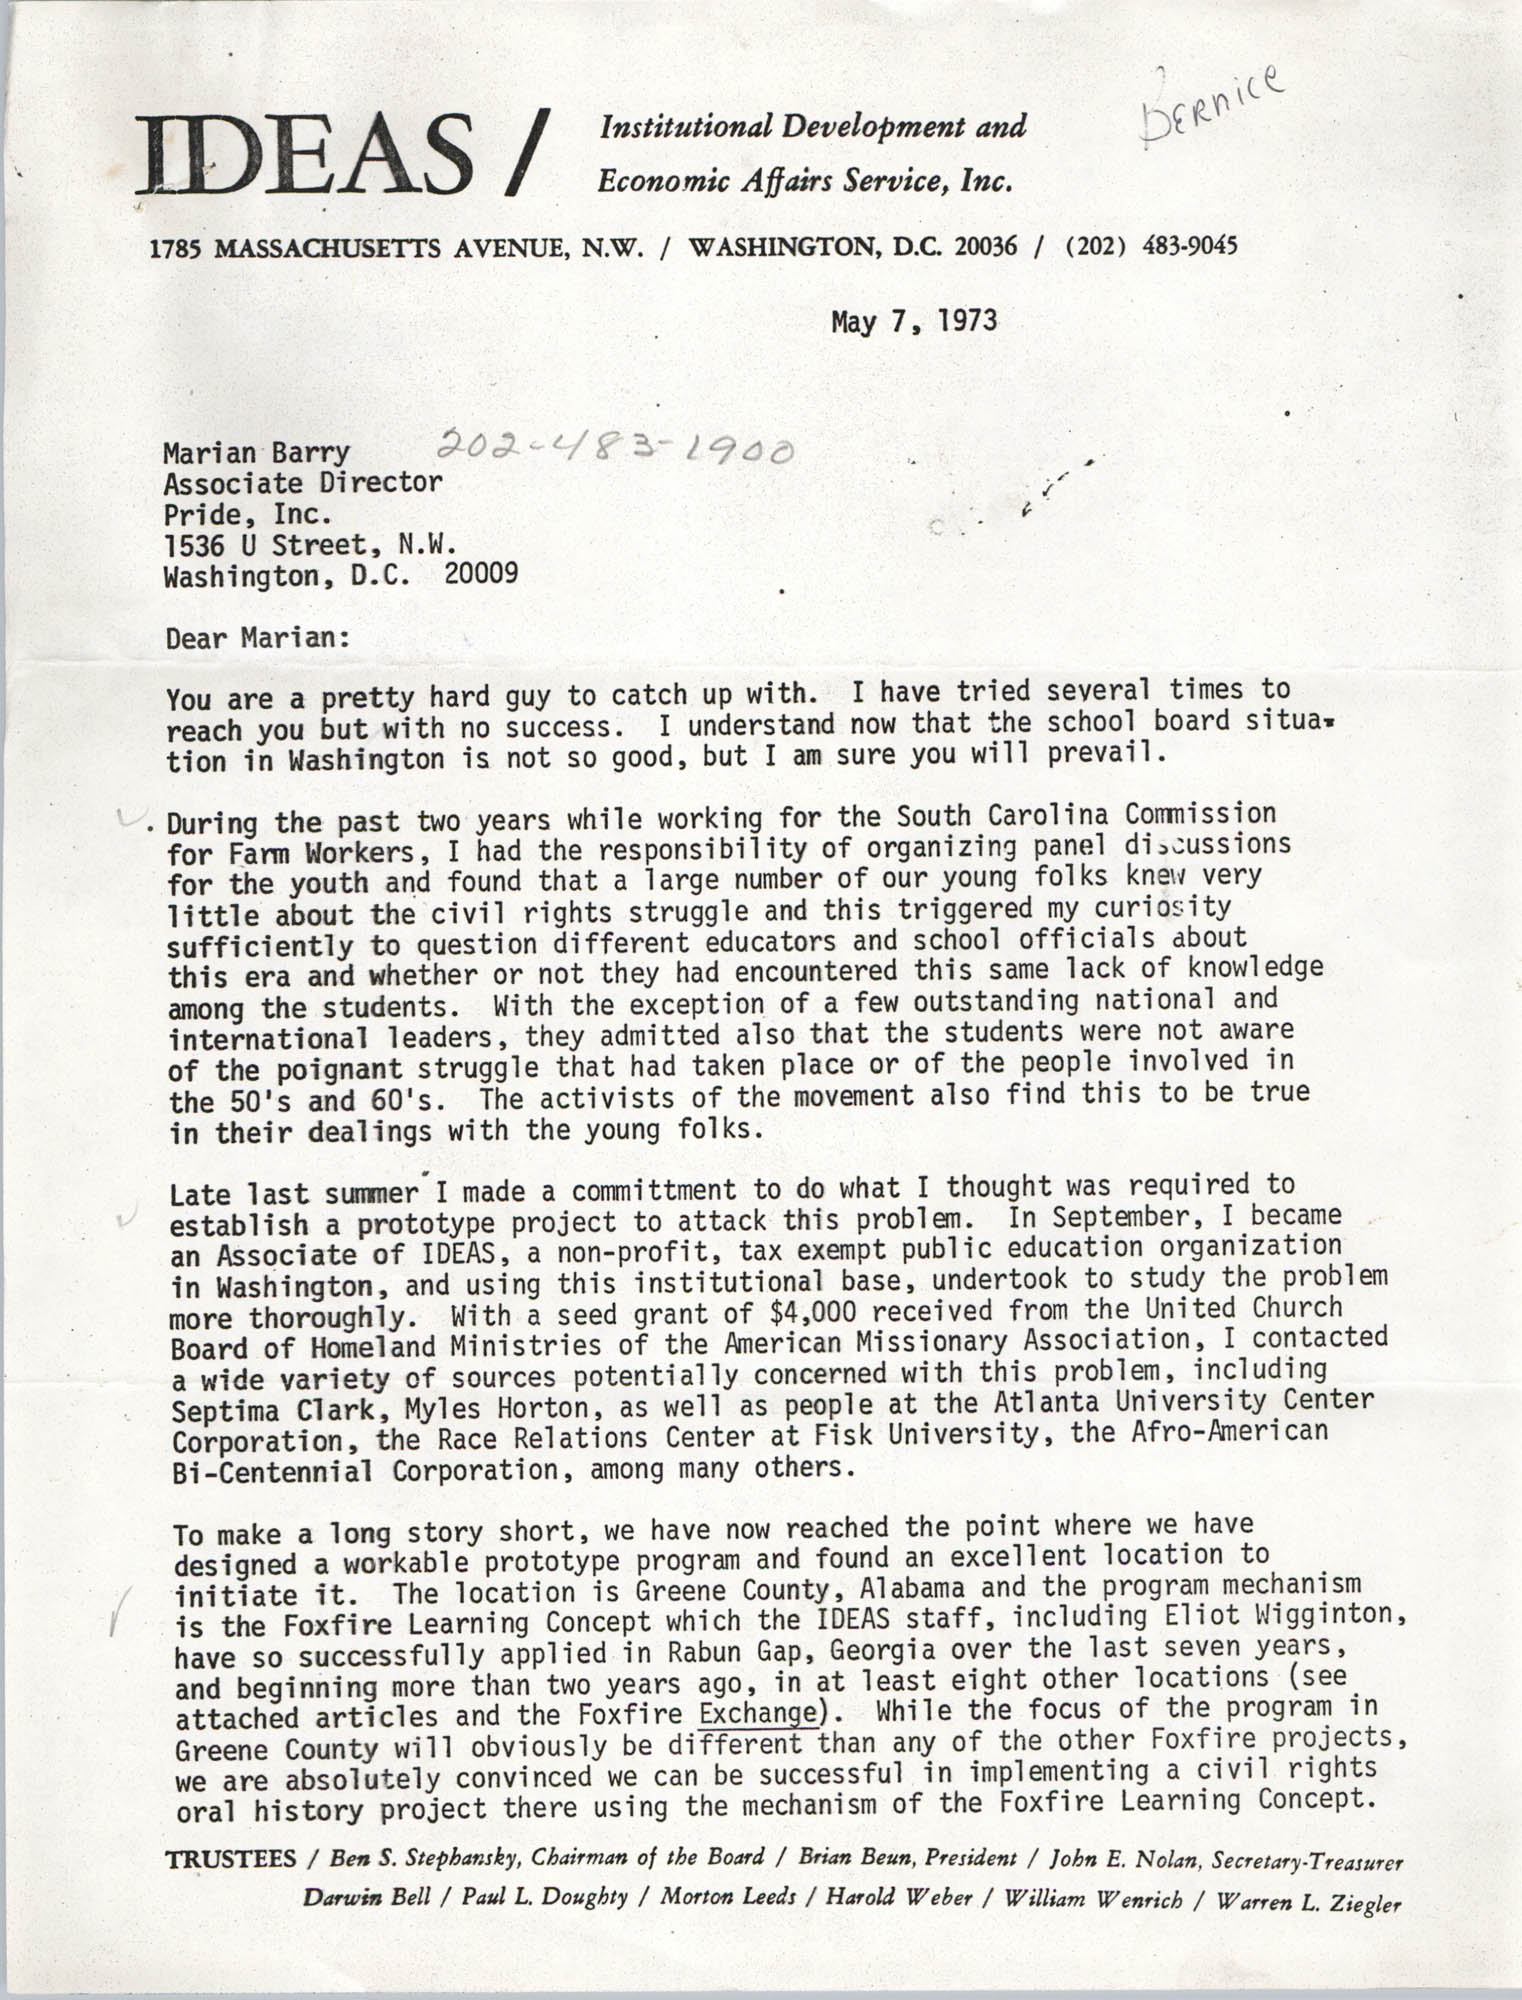 Letter from Bernice Robinson to Marian Berry, May 7, 1973, Page 1